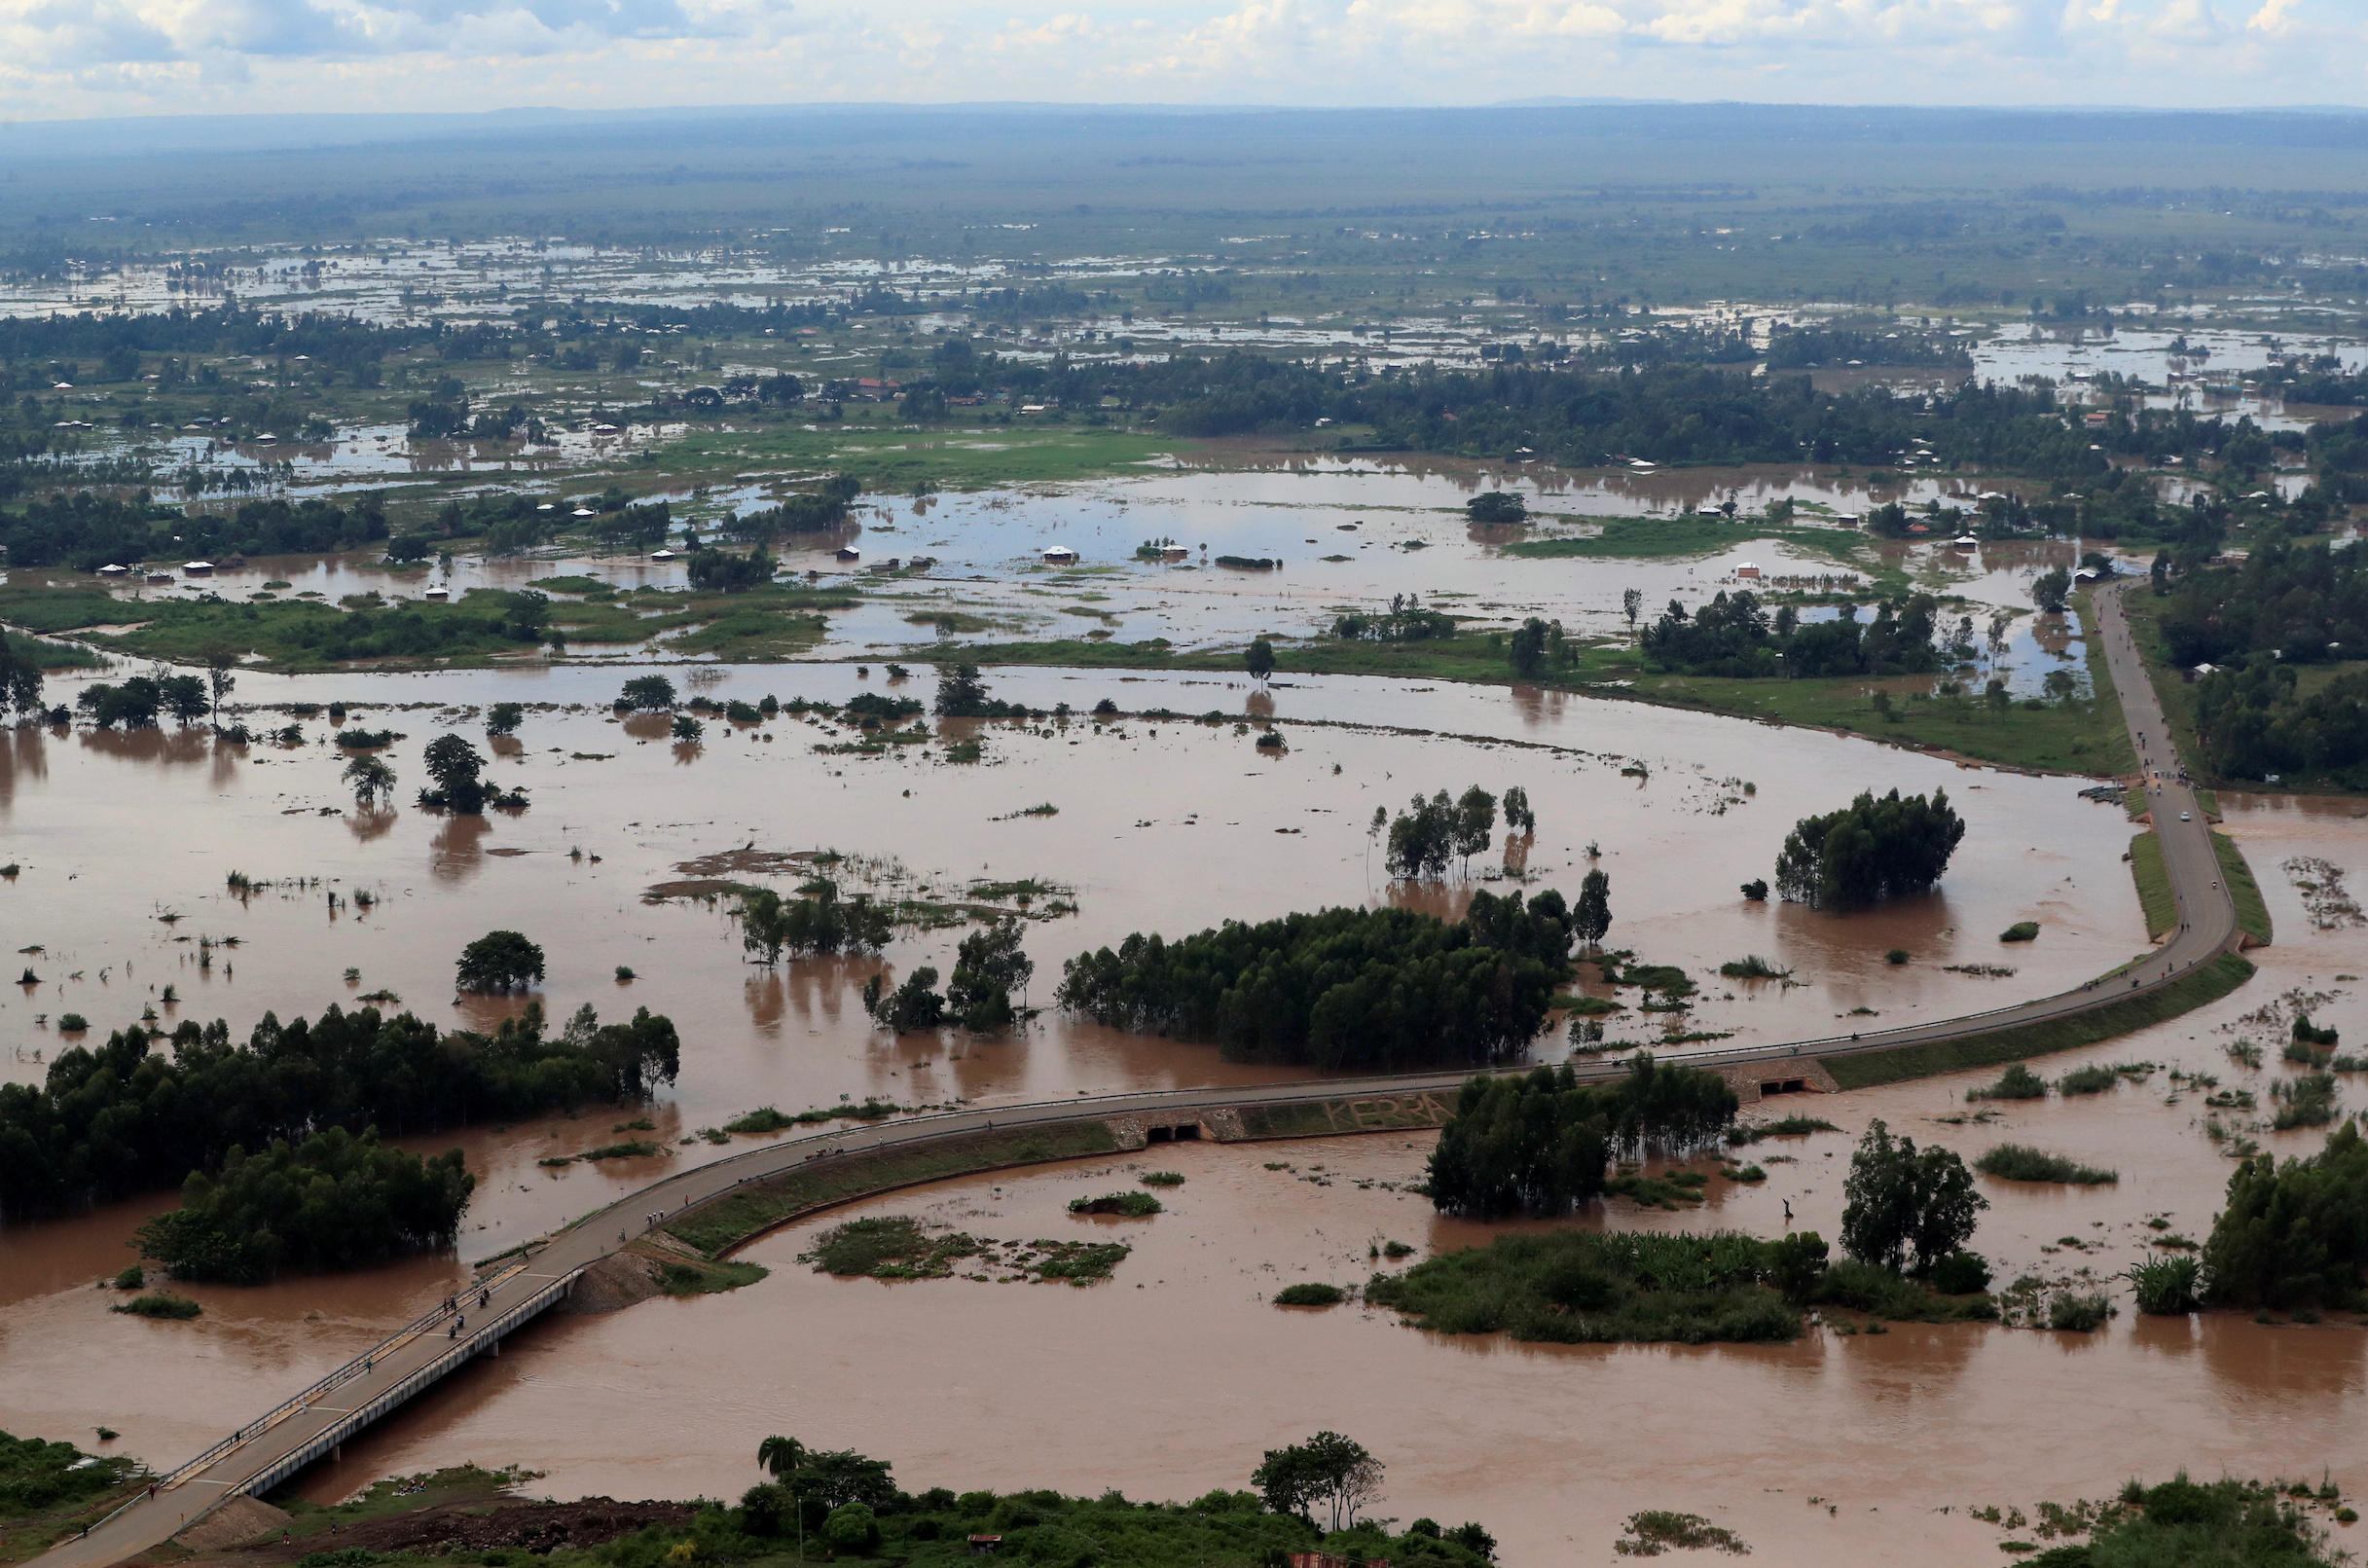 FILE PHOTO: An aerial view shows flood waters near the Sigiri bridge, after River Nzoia burst its banks and due to heavy rainfall and the backflow from Lake Victoria, in Budalangi within Busia County, Kenya May 3, 2020. REUTERS/Thomas Mukoya/File Photo